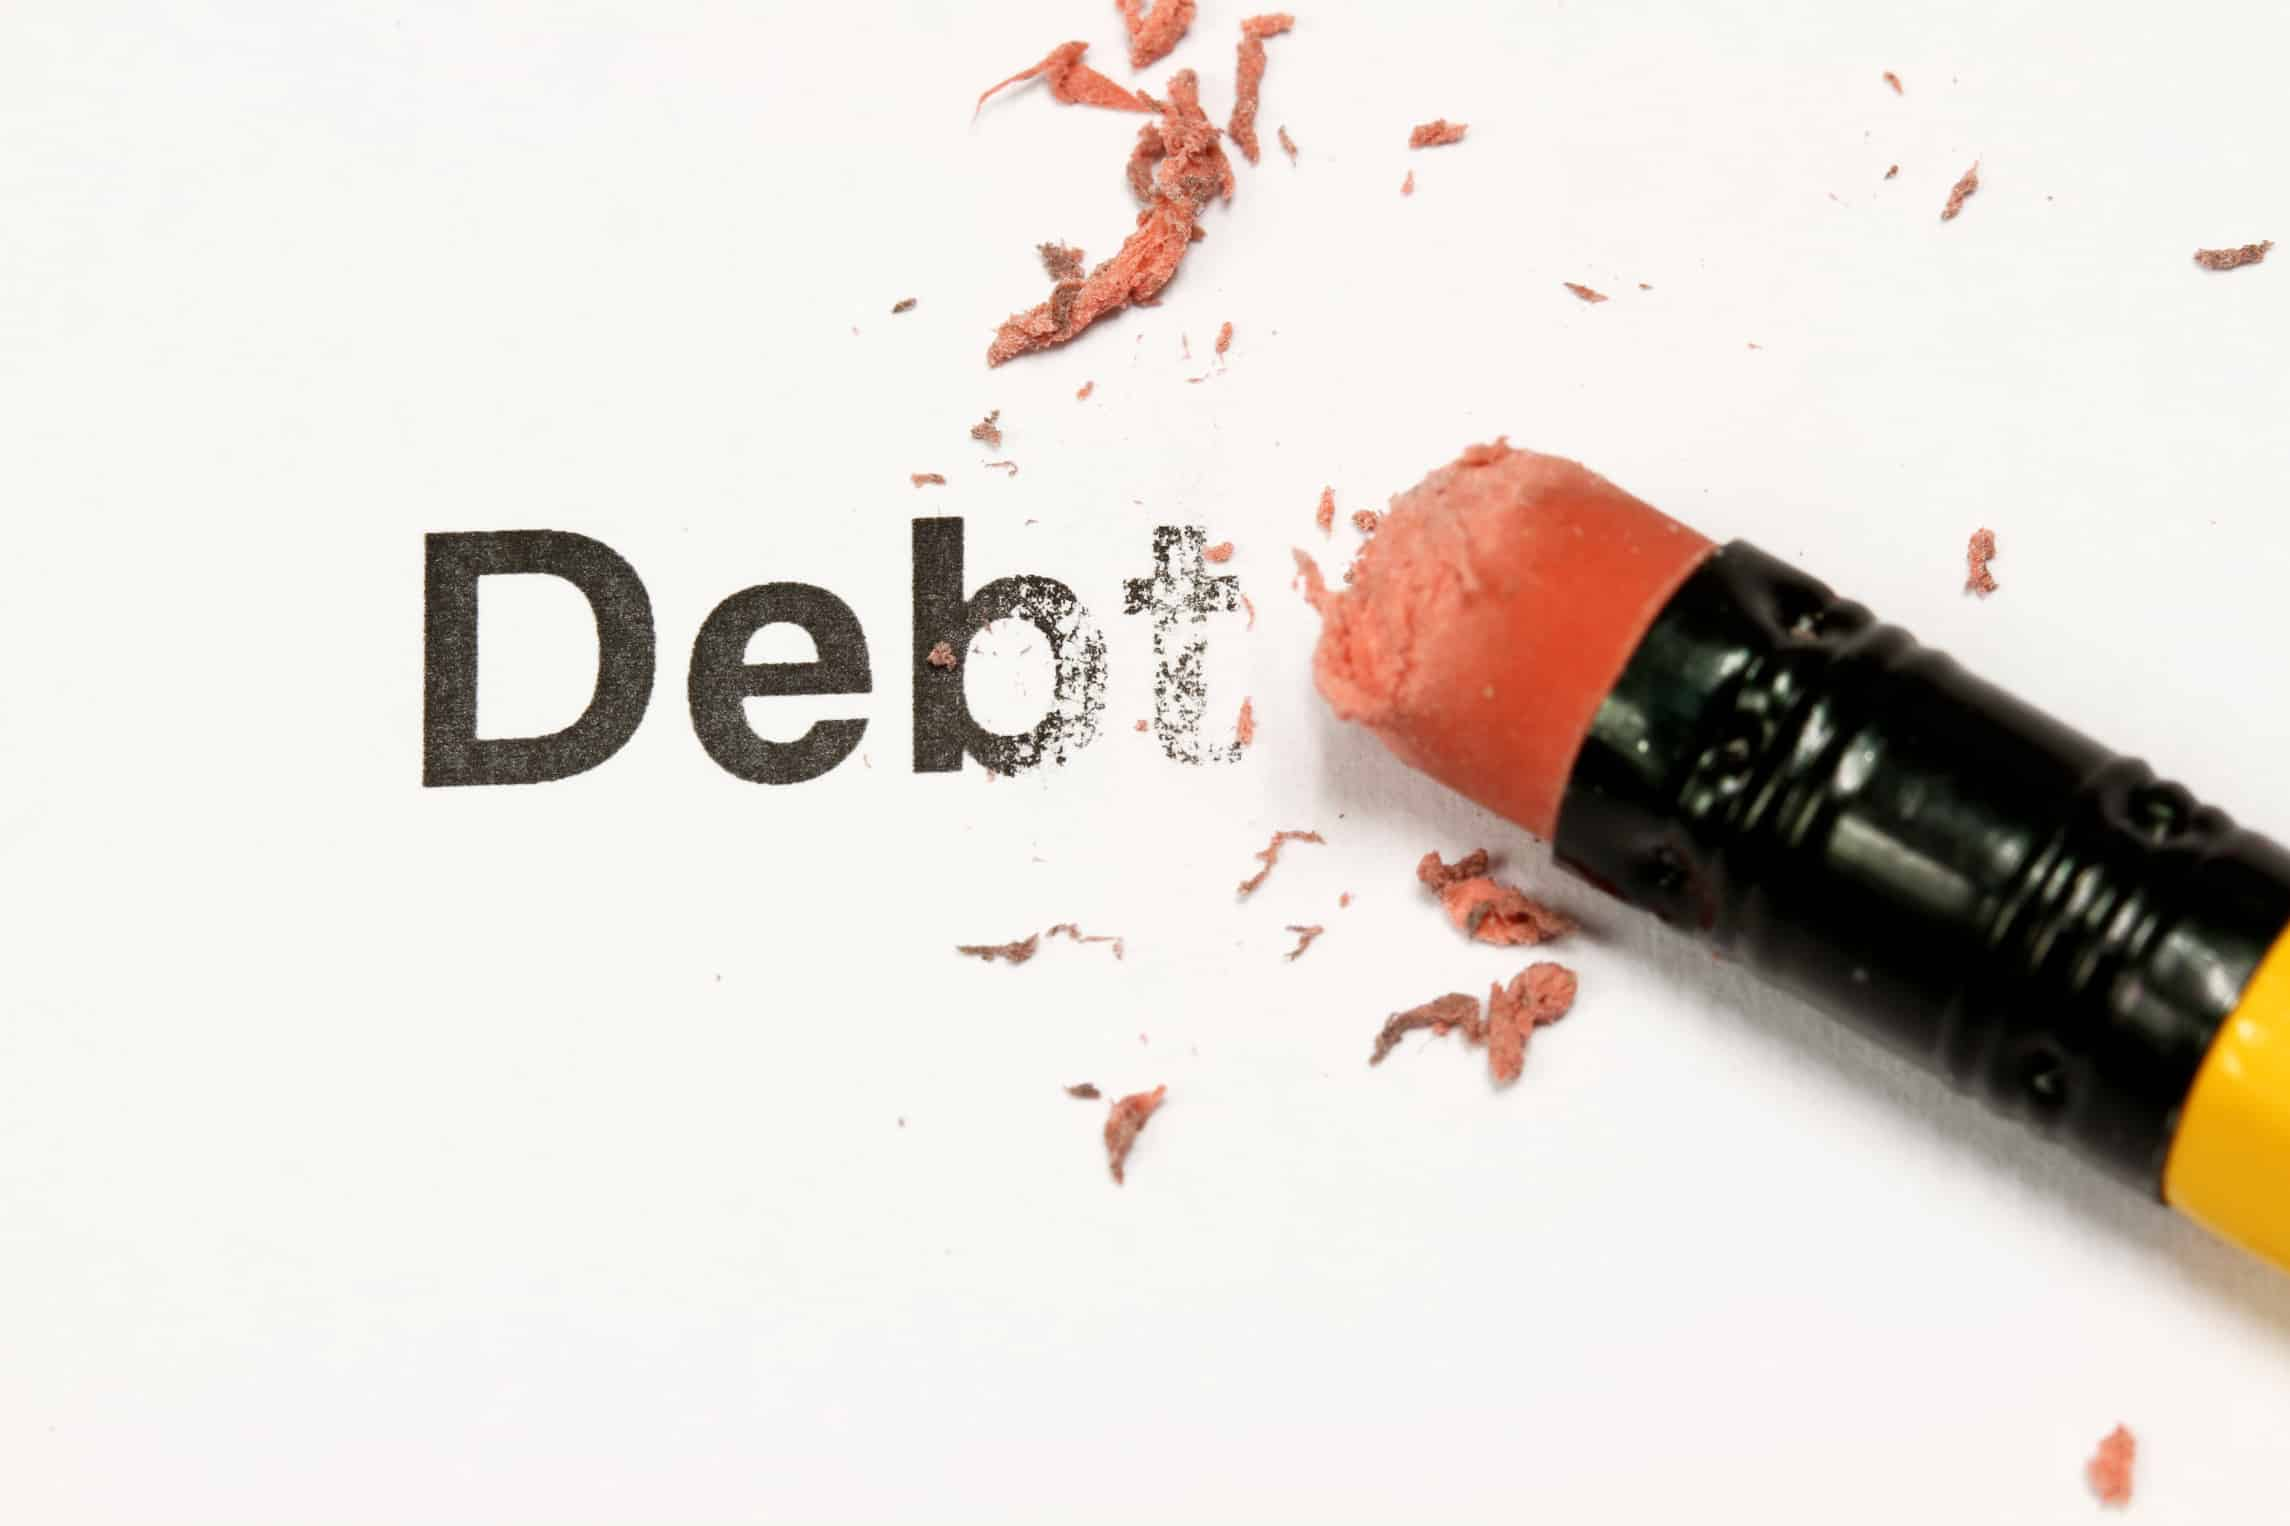 Earning A Degree While Battling Debt: 5 Tips To Make It Out Alive